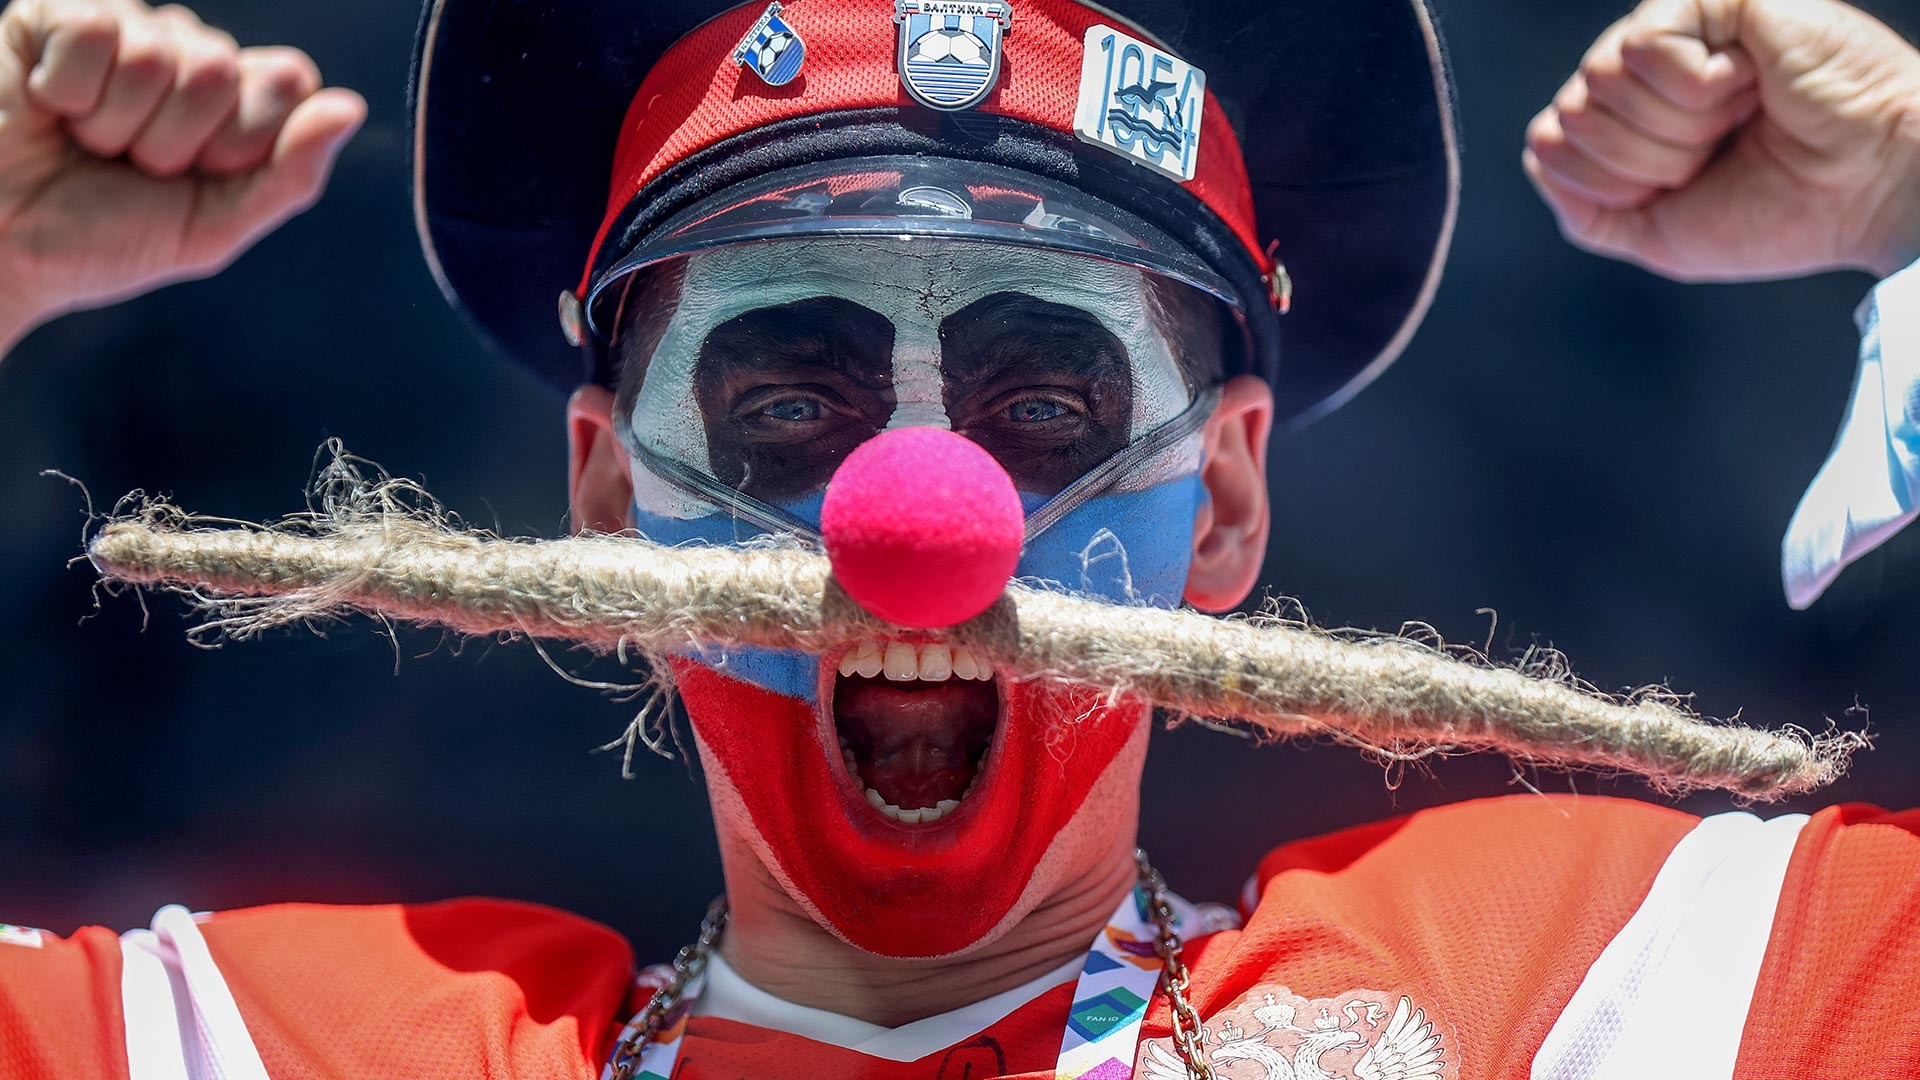 A Russia fan shows their support prior to the UEFA Euro 2020 Championship Group B match between Finland and Russia at Saint Petersburg Stadium on June 16, 2021 in Saint Petersburg, Russia.